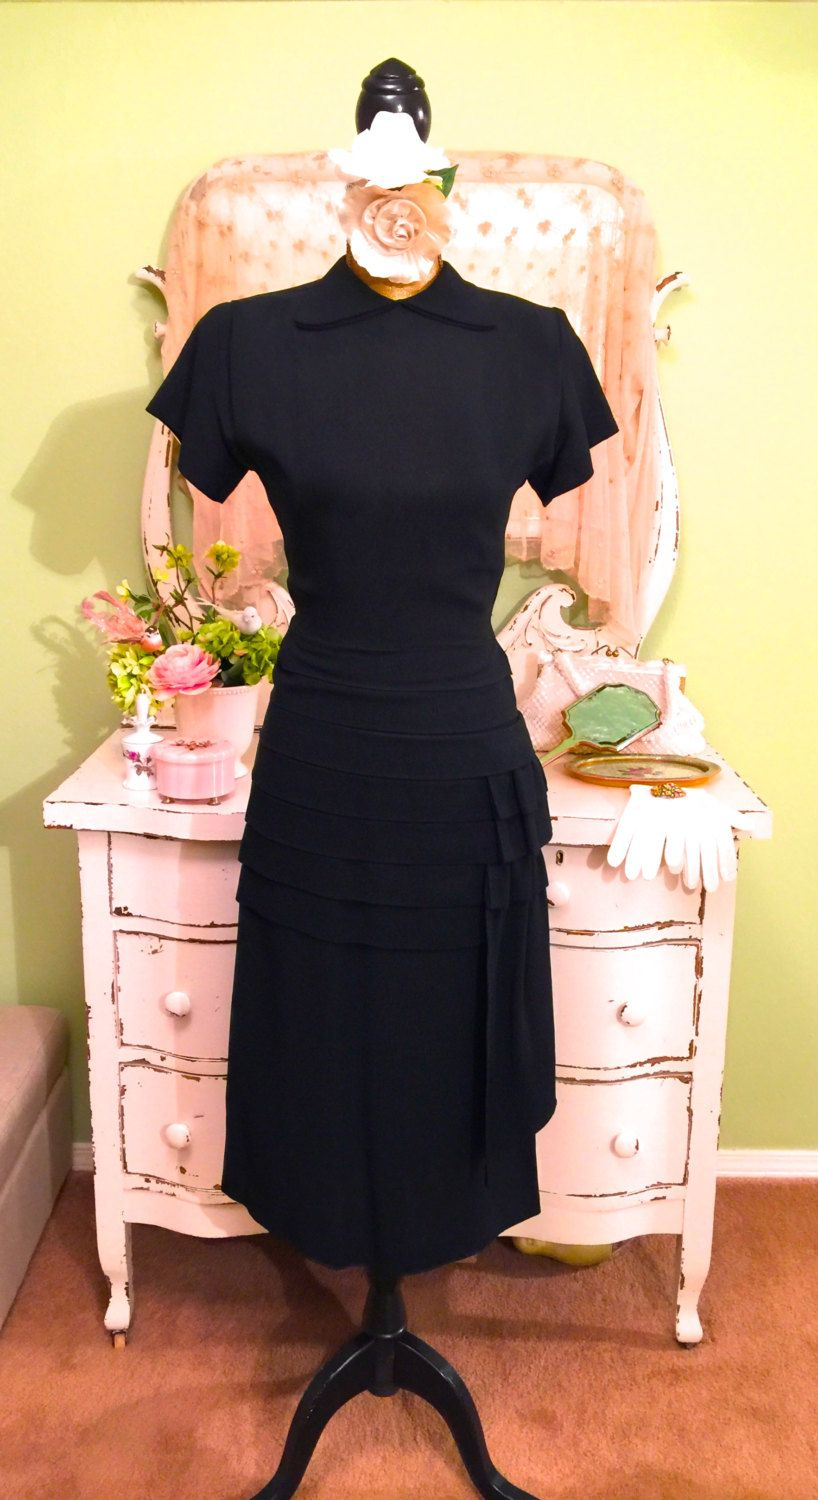 Five 40s Dresses That Capture The Era: 1930s 40s Tailored Dress, Black Fitted Crepe, WWII Era